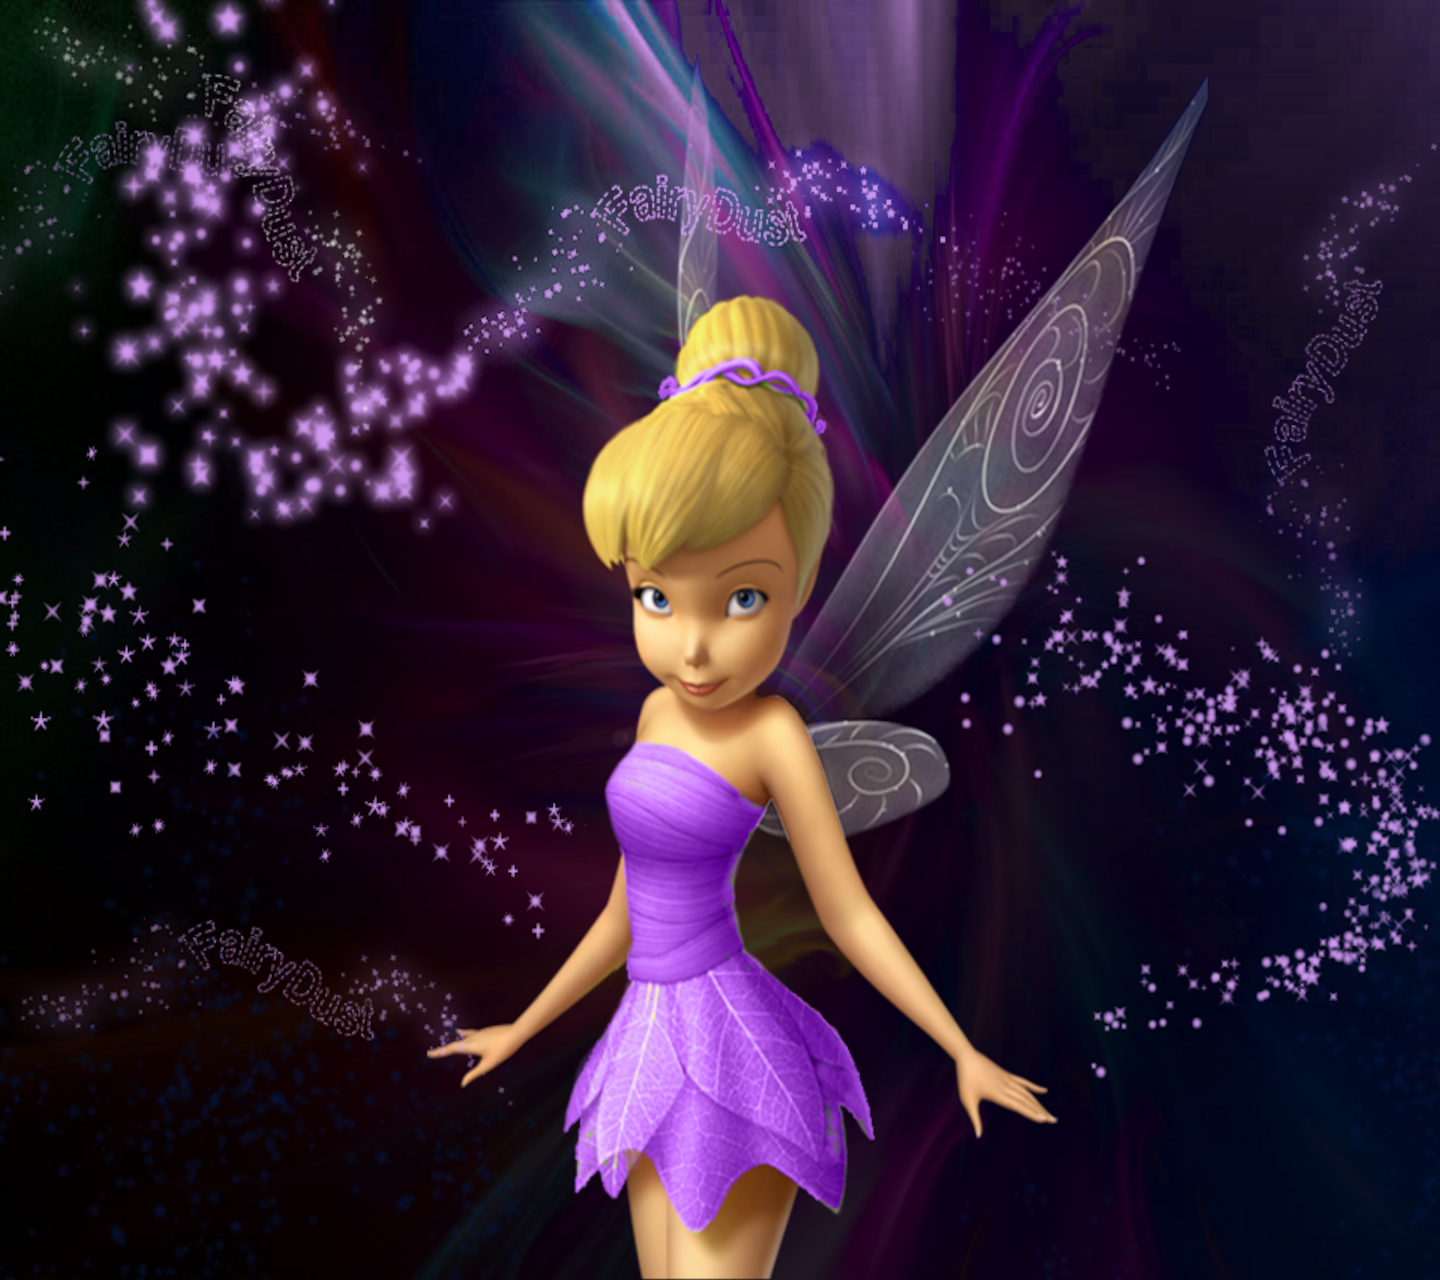 Free Download Download Tinkerbell 1440 X 1280 Wallpapers